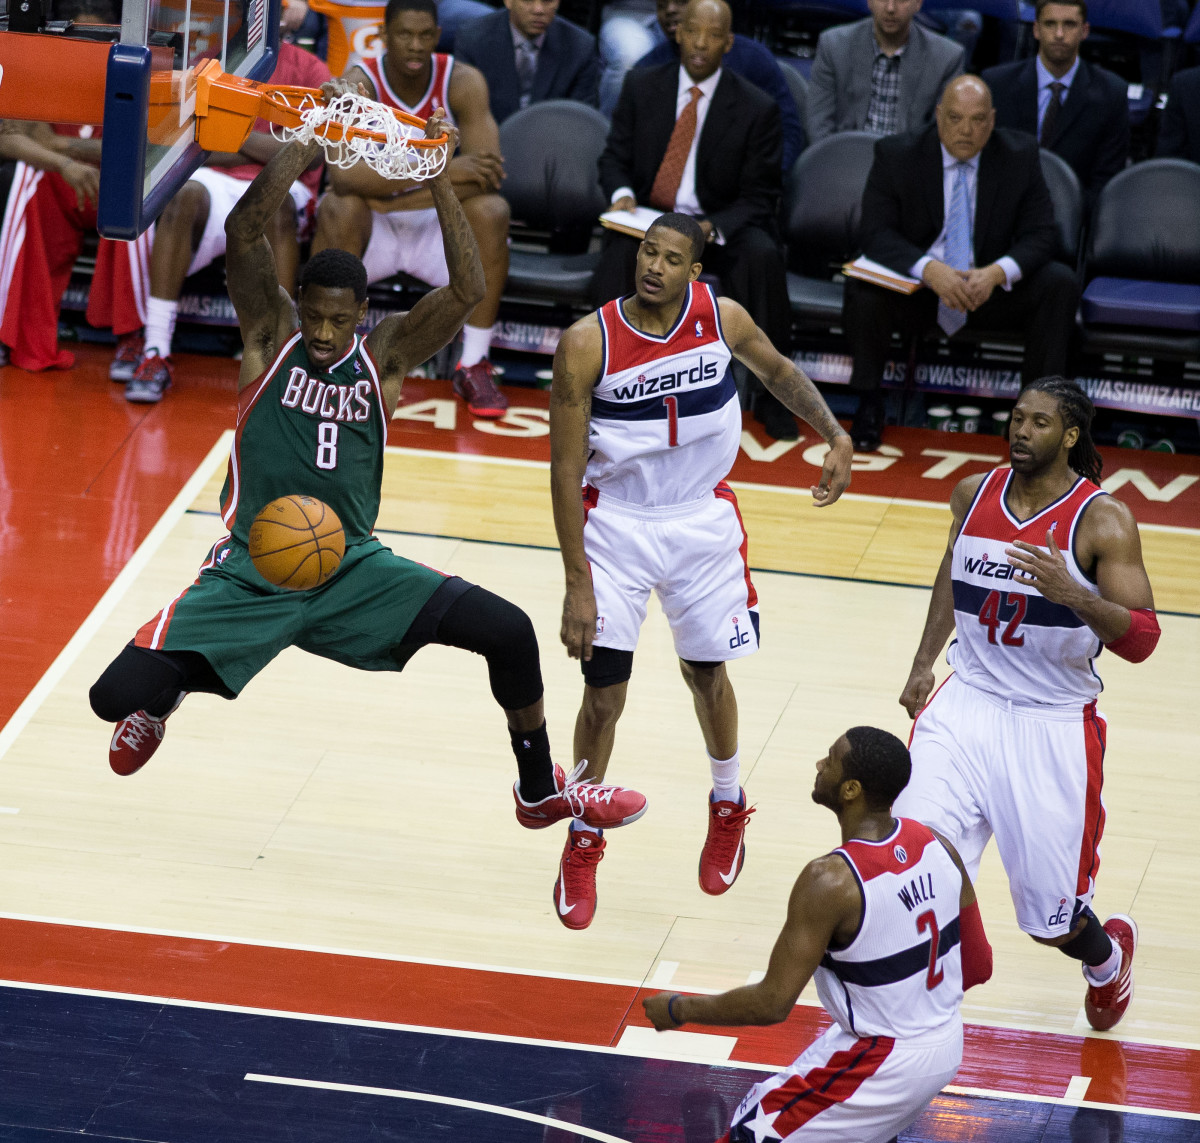 Larry Sanders dunking in a game in March 2013 against the Washington Wizards. (Photo: Keith Allison/Wikimedia Commons)